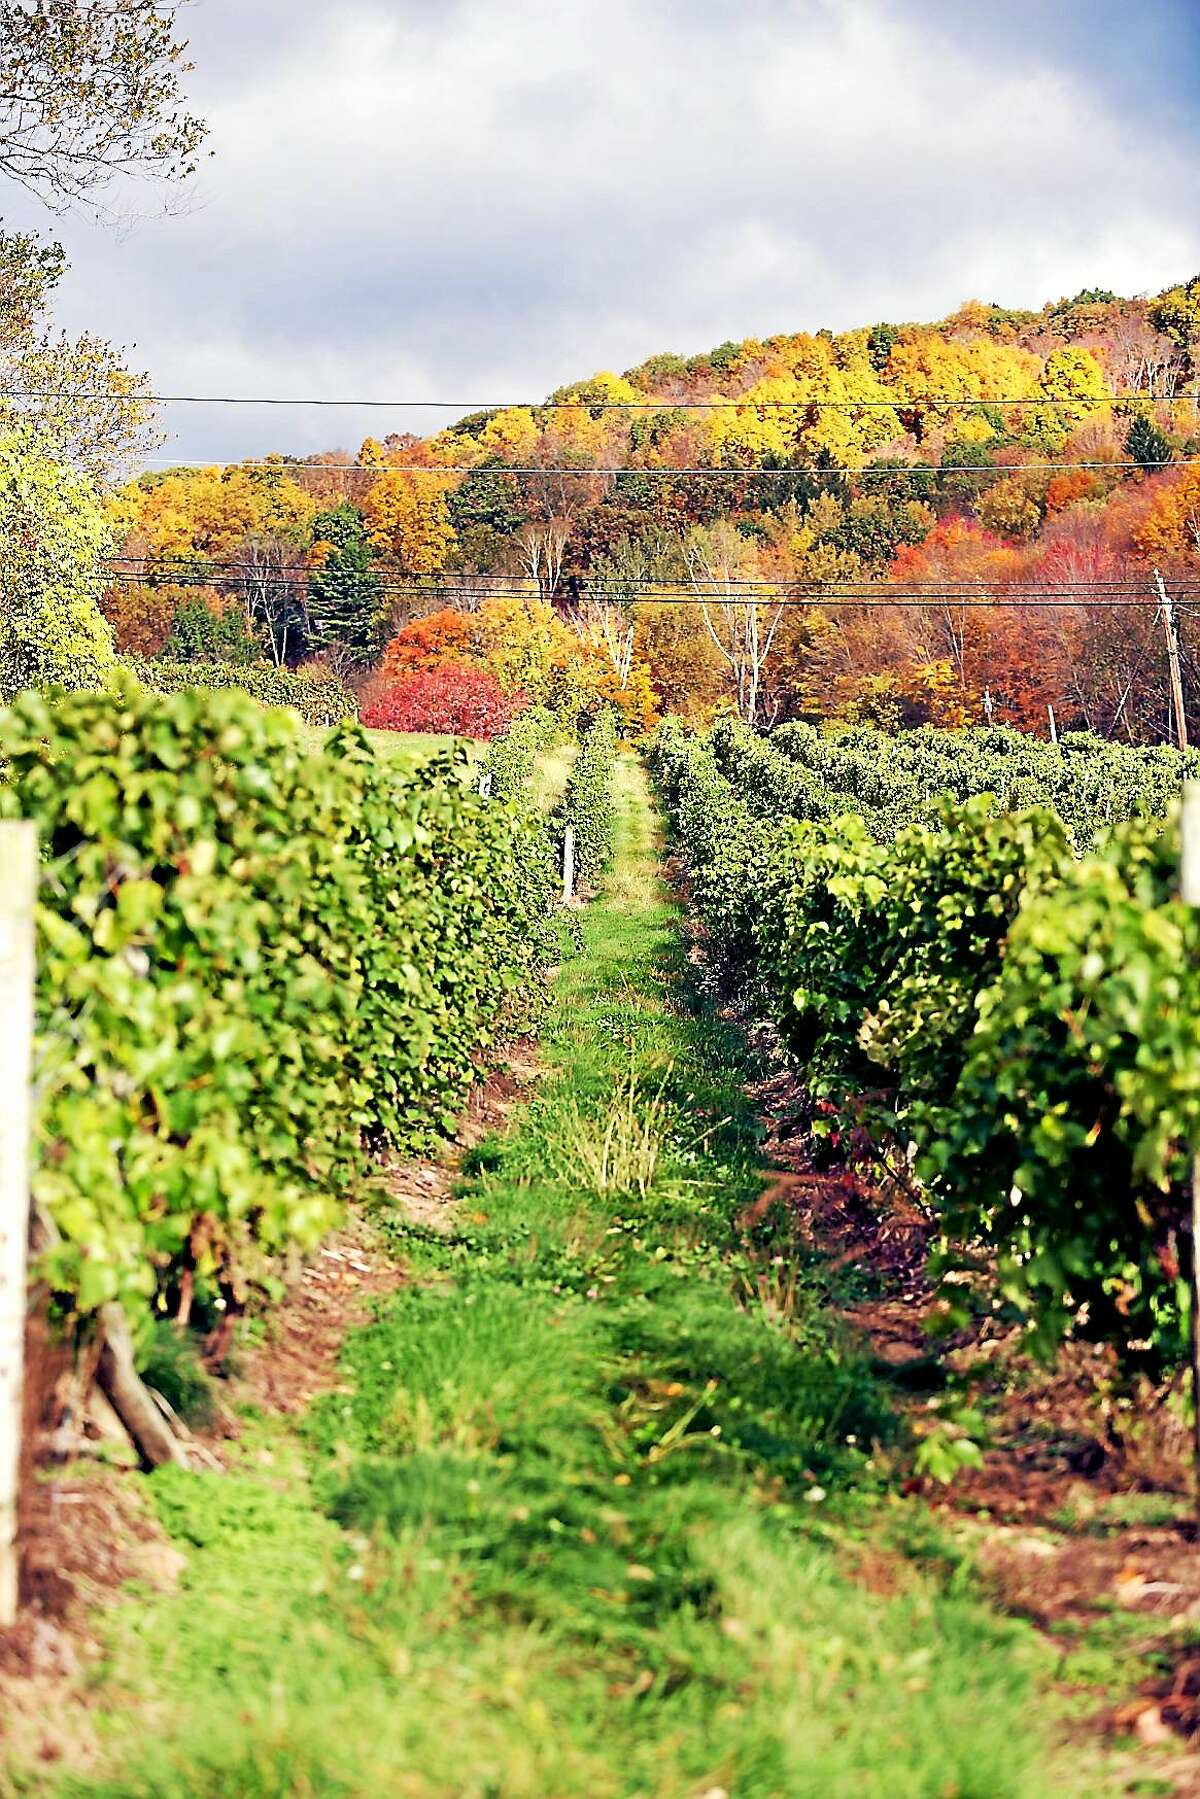 A scene from Hopkins Vineyards in the fall.